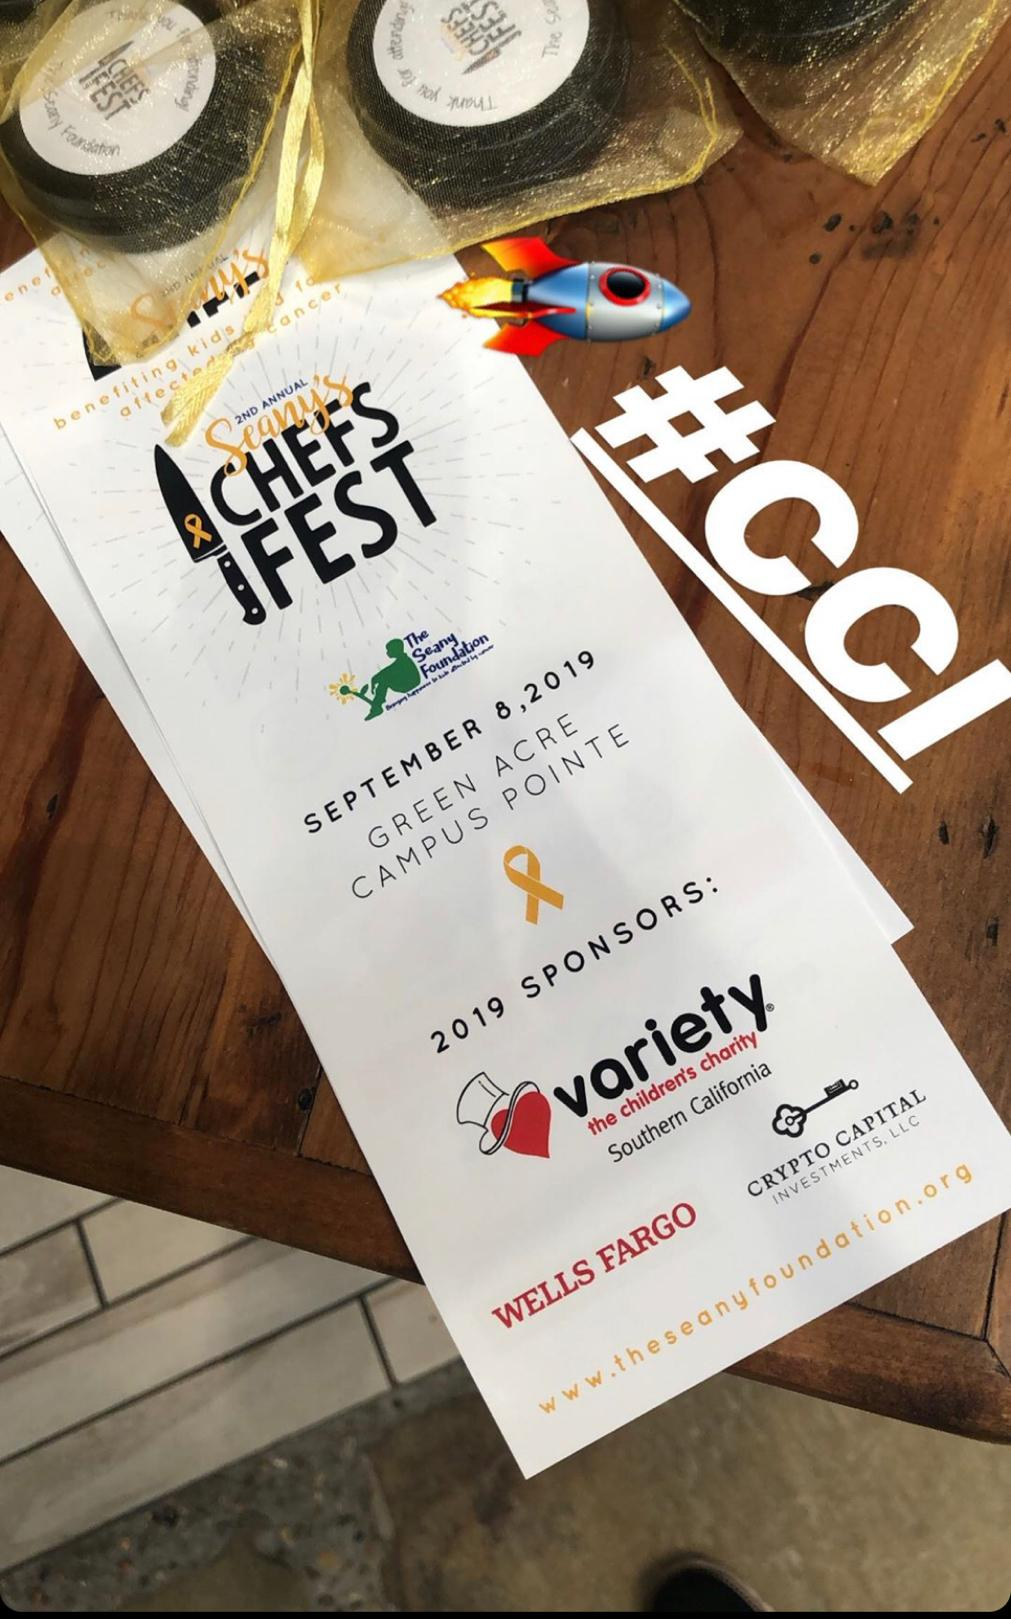 Crypto Capital Investments Sponsors Seany Foundation's Chefs Fest